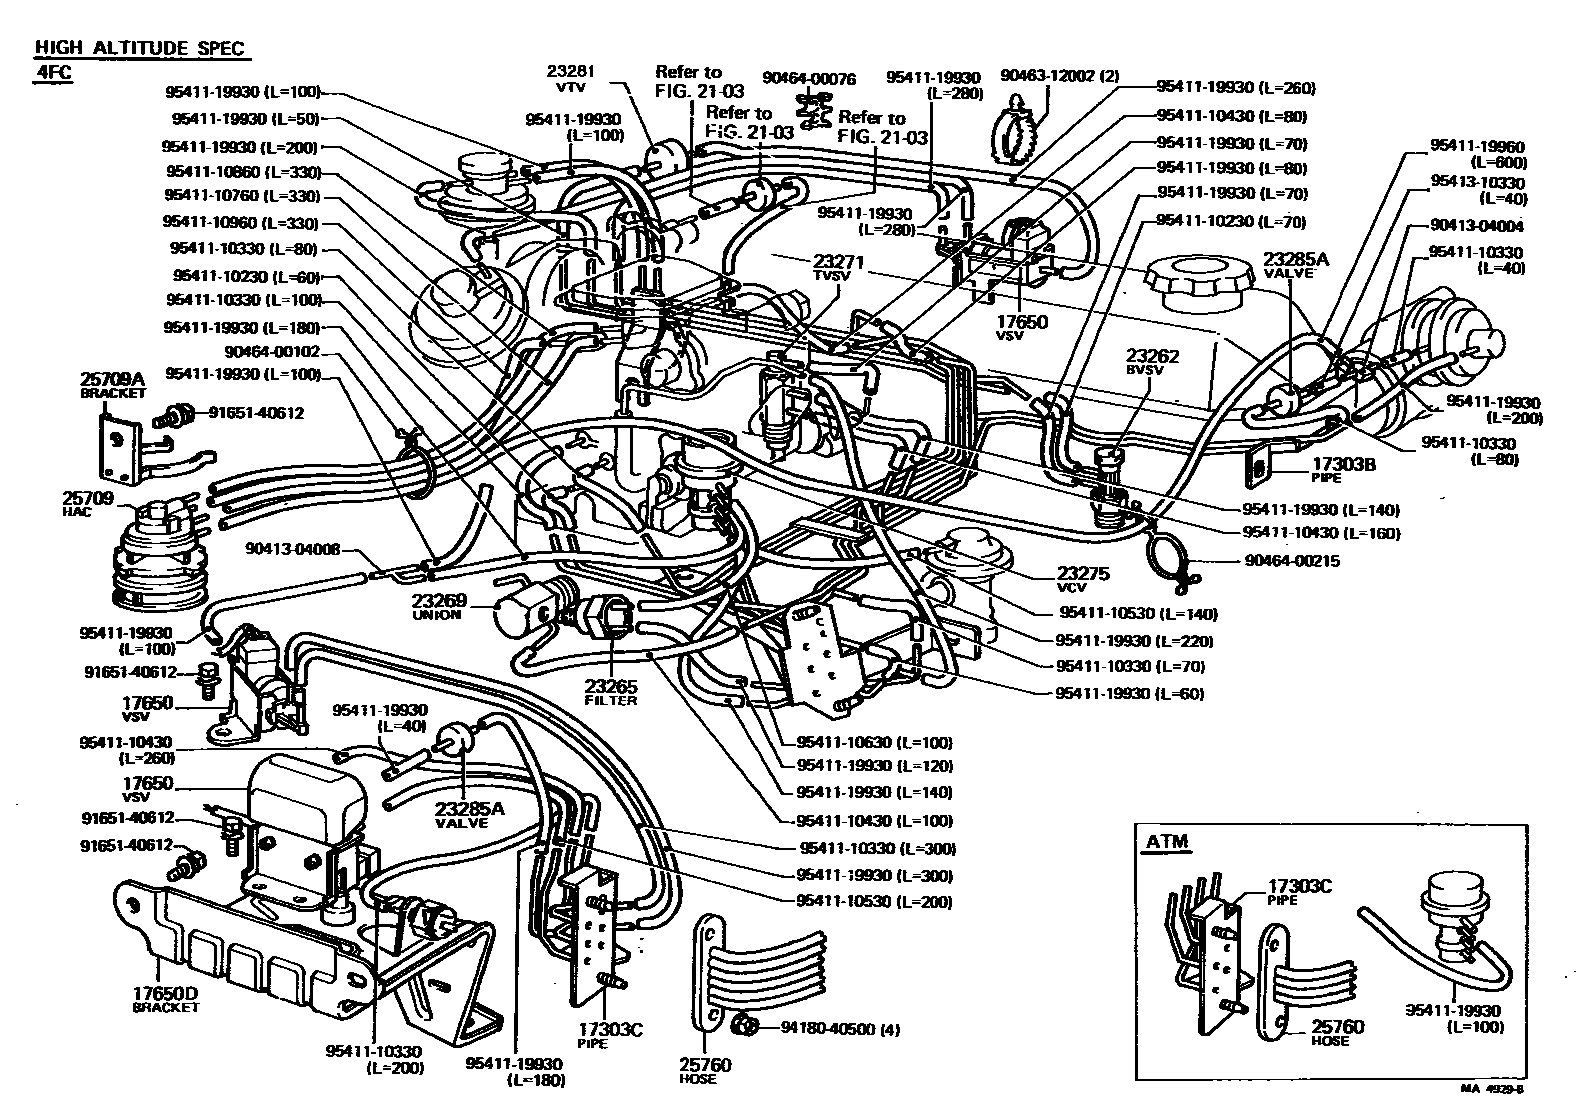 Toyota    Tundra       Trailer       Wiring       Diagram         Trailer       Wiring       Diagram